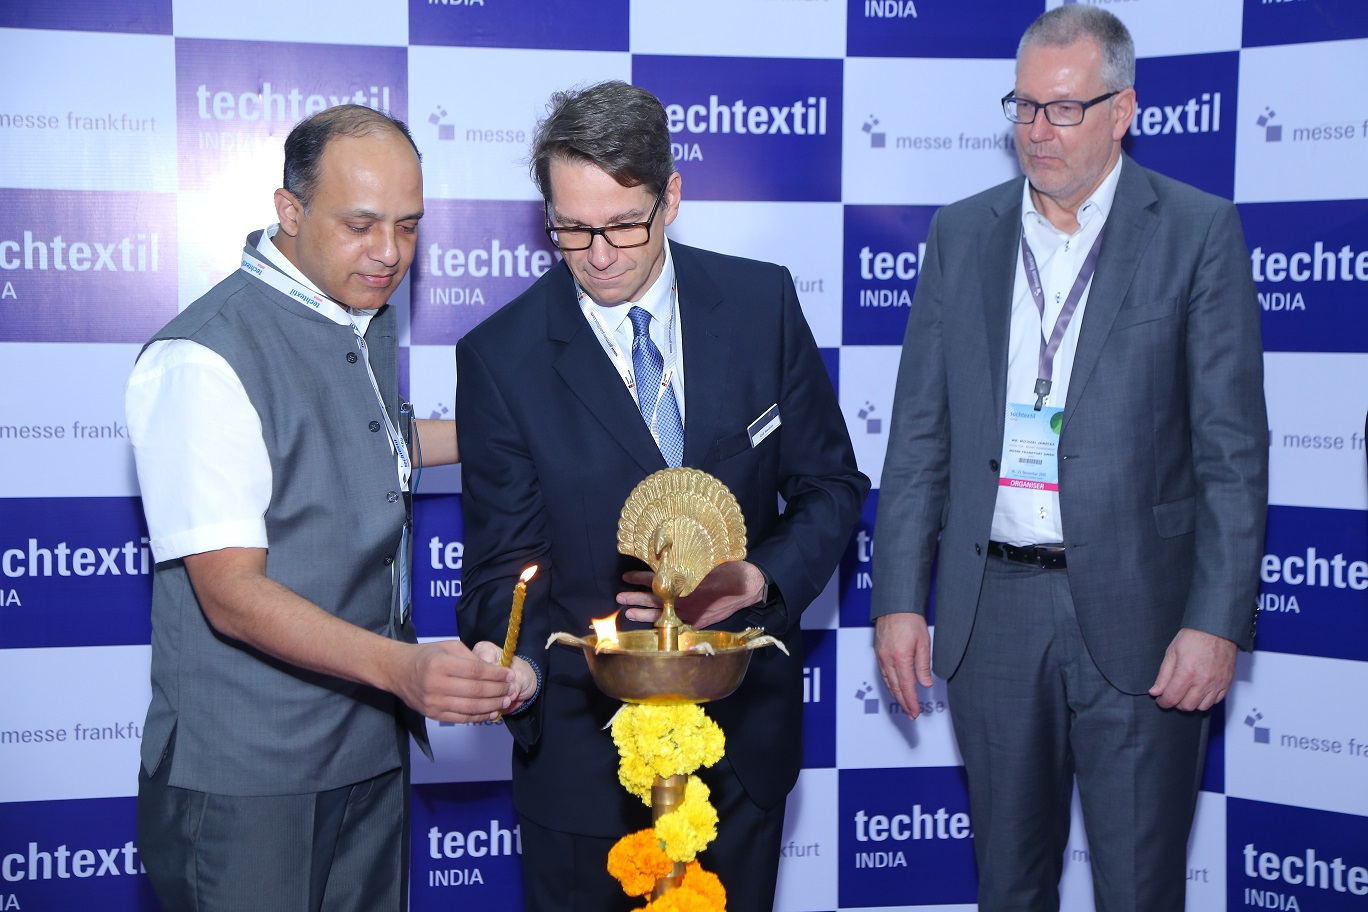 India's biggest ever technical textiles fair Techtextil India opens today with 23% surge in exhibitors reflecting the progressive sector